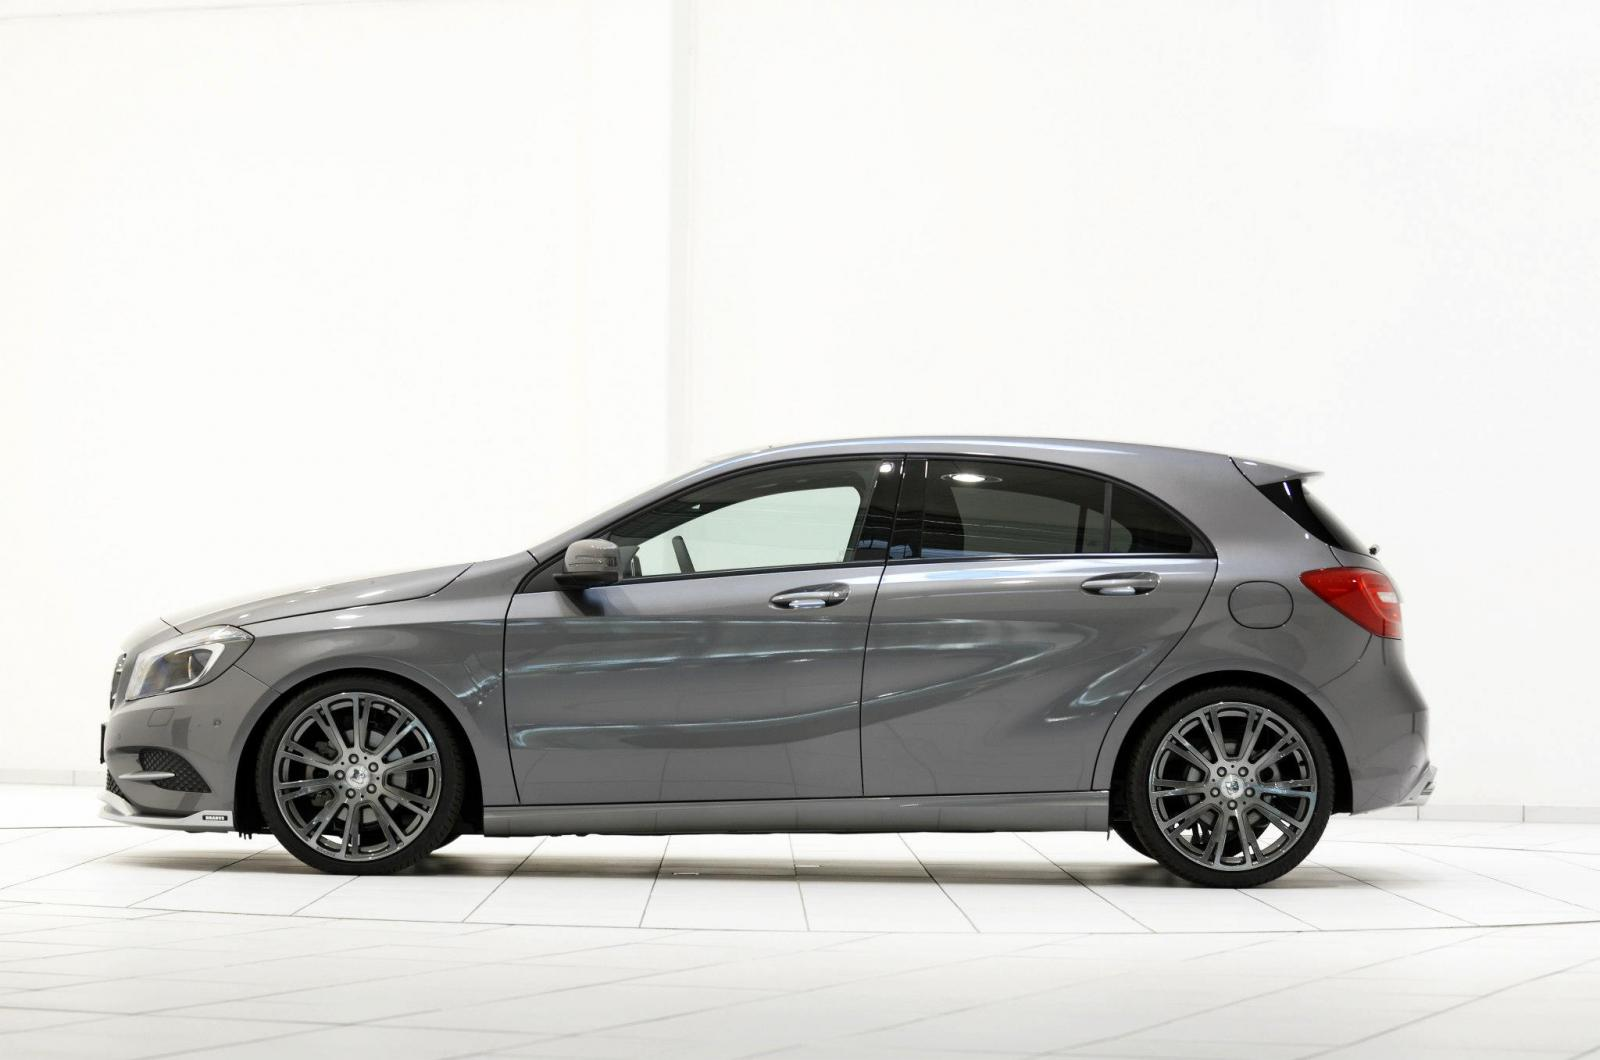 Mercedes a200 cdi gets more power from brabus autoevolution for Mercedes benz a200